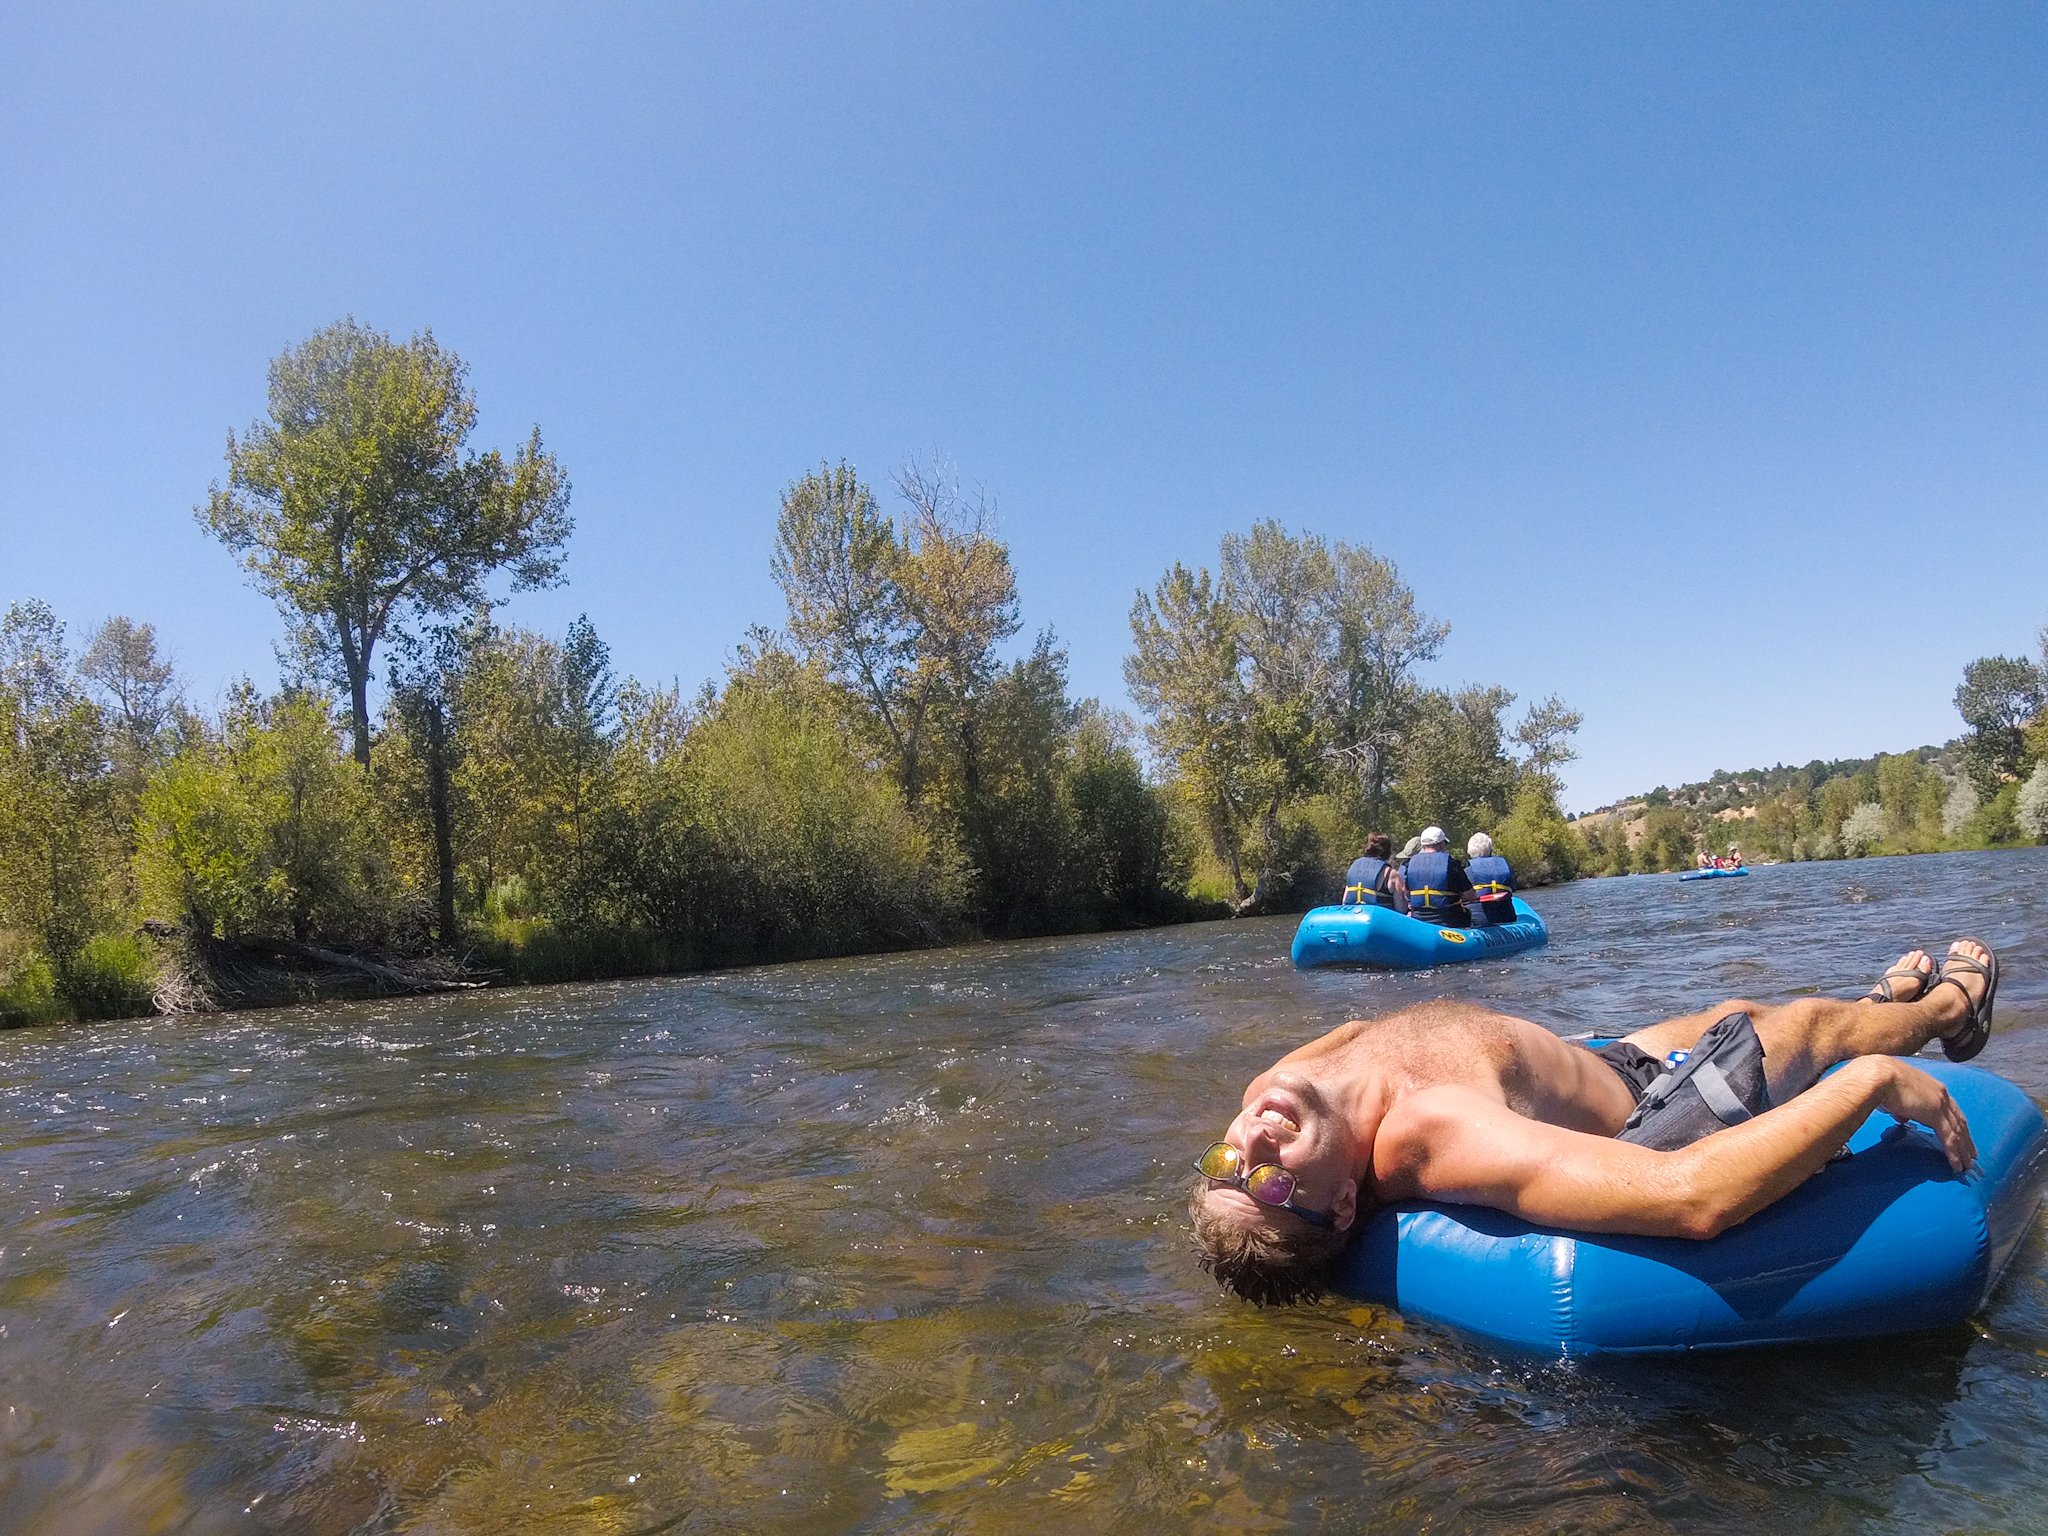 Floating the Boise River